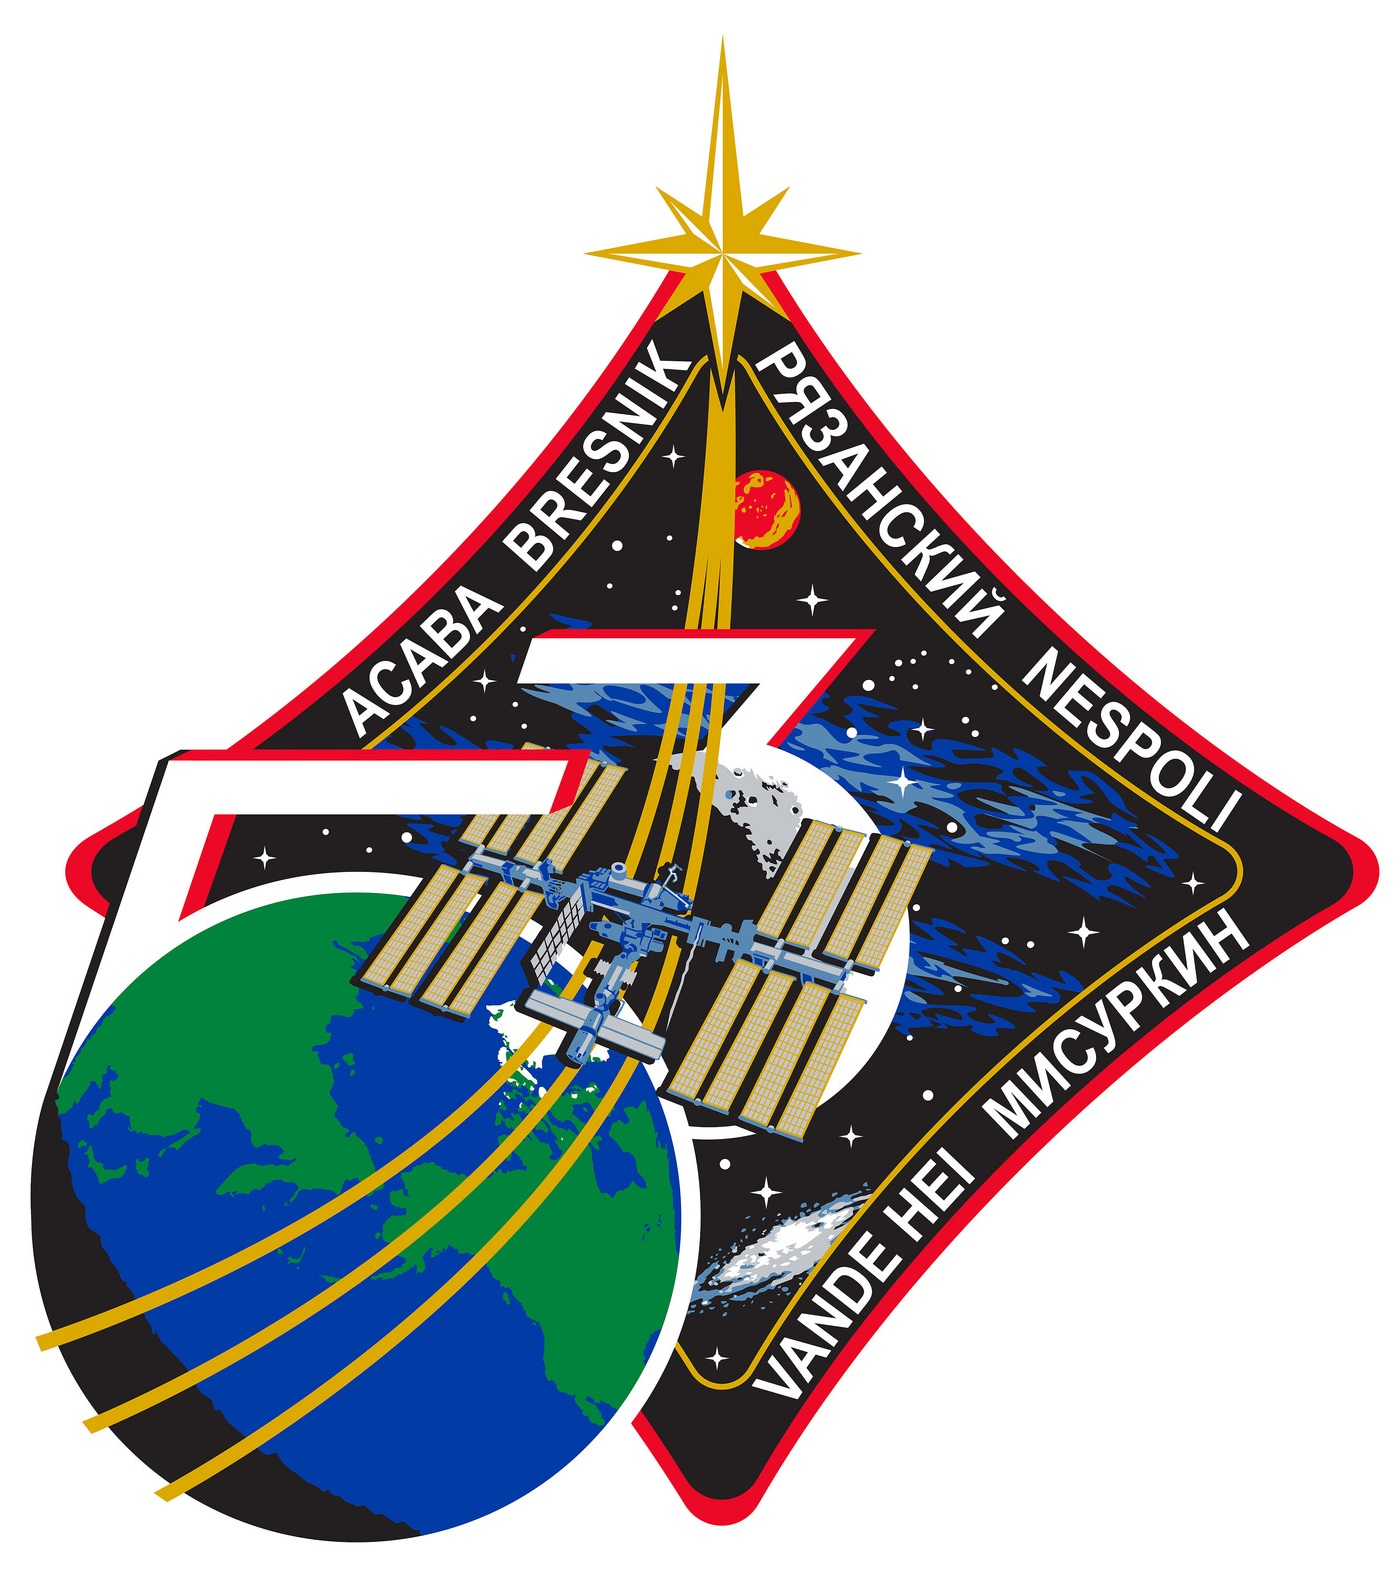 ISS Expedition 53 Crew Patch - Credit: NASA/Roscosmos